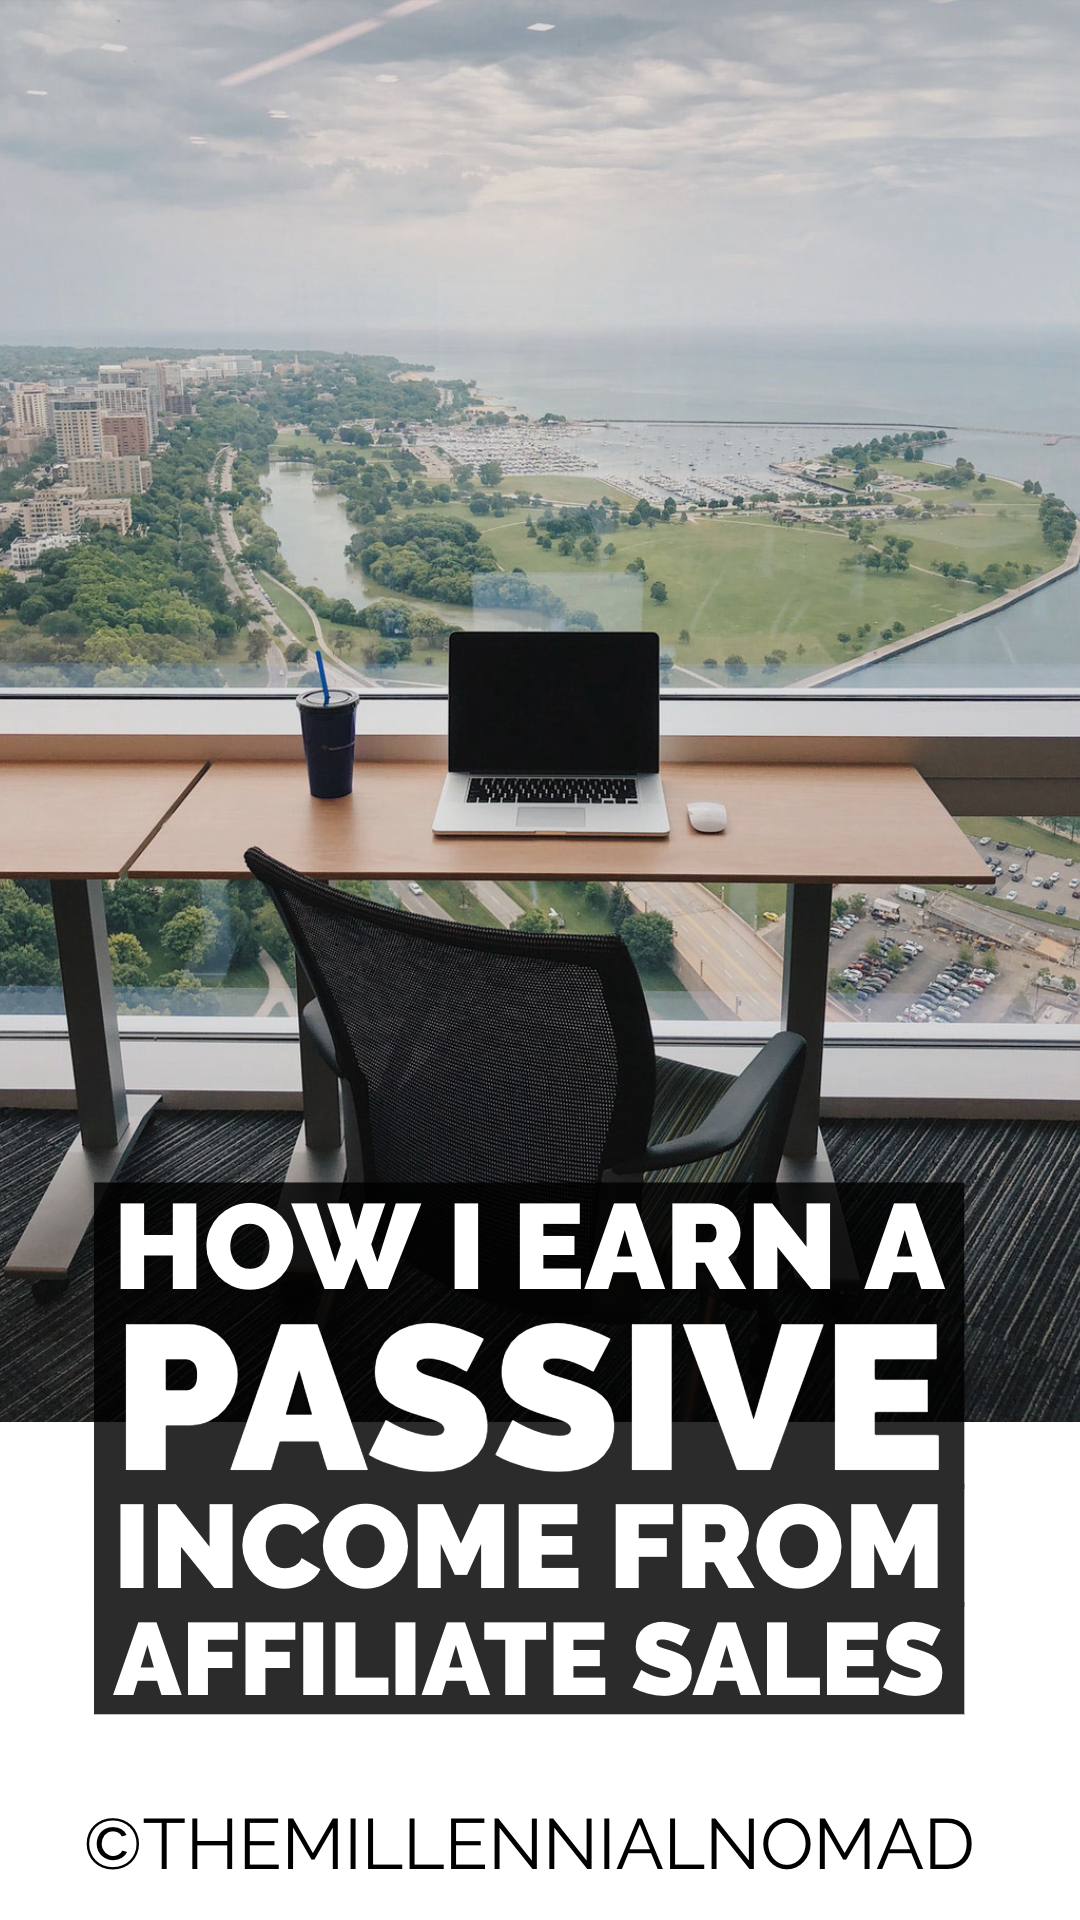 How I Earn A Passive Income From Affiliate Sales